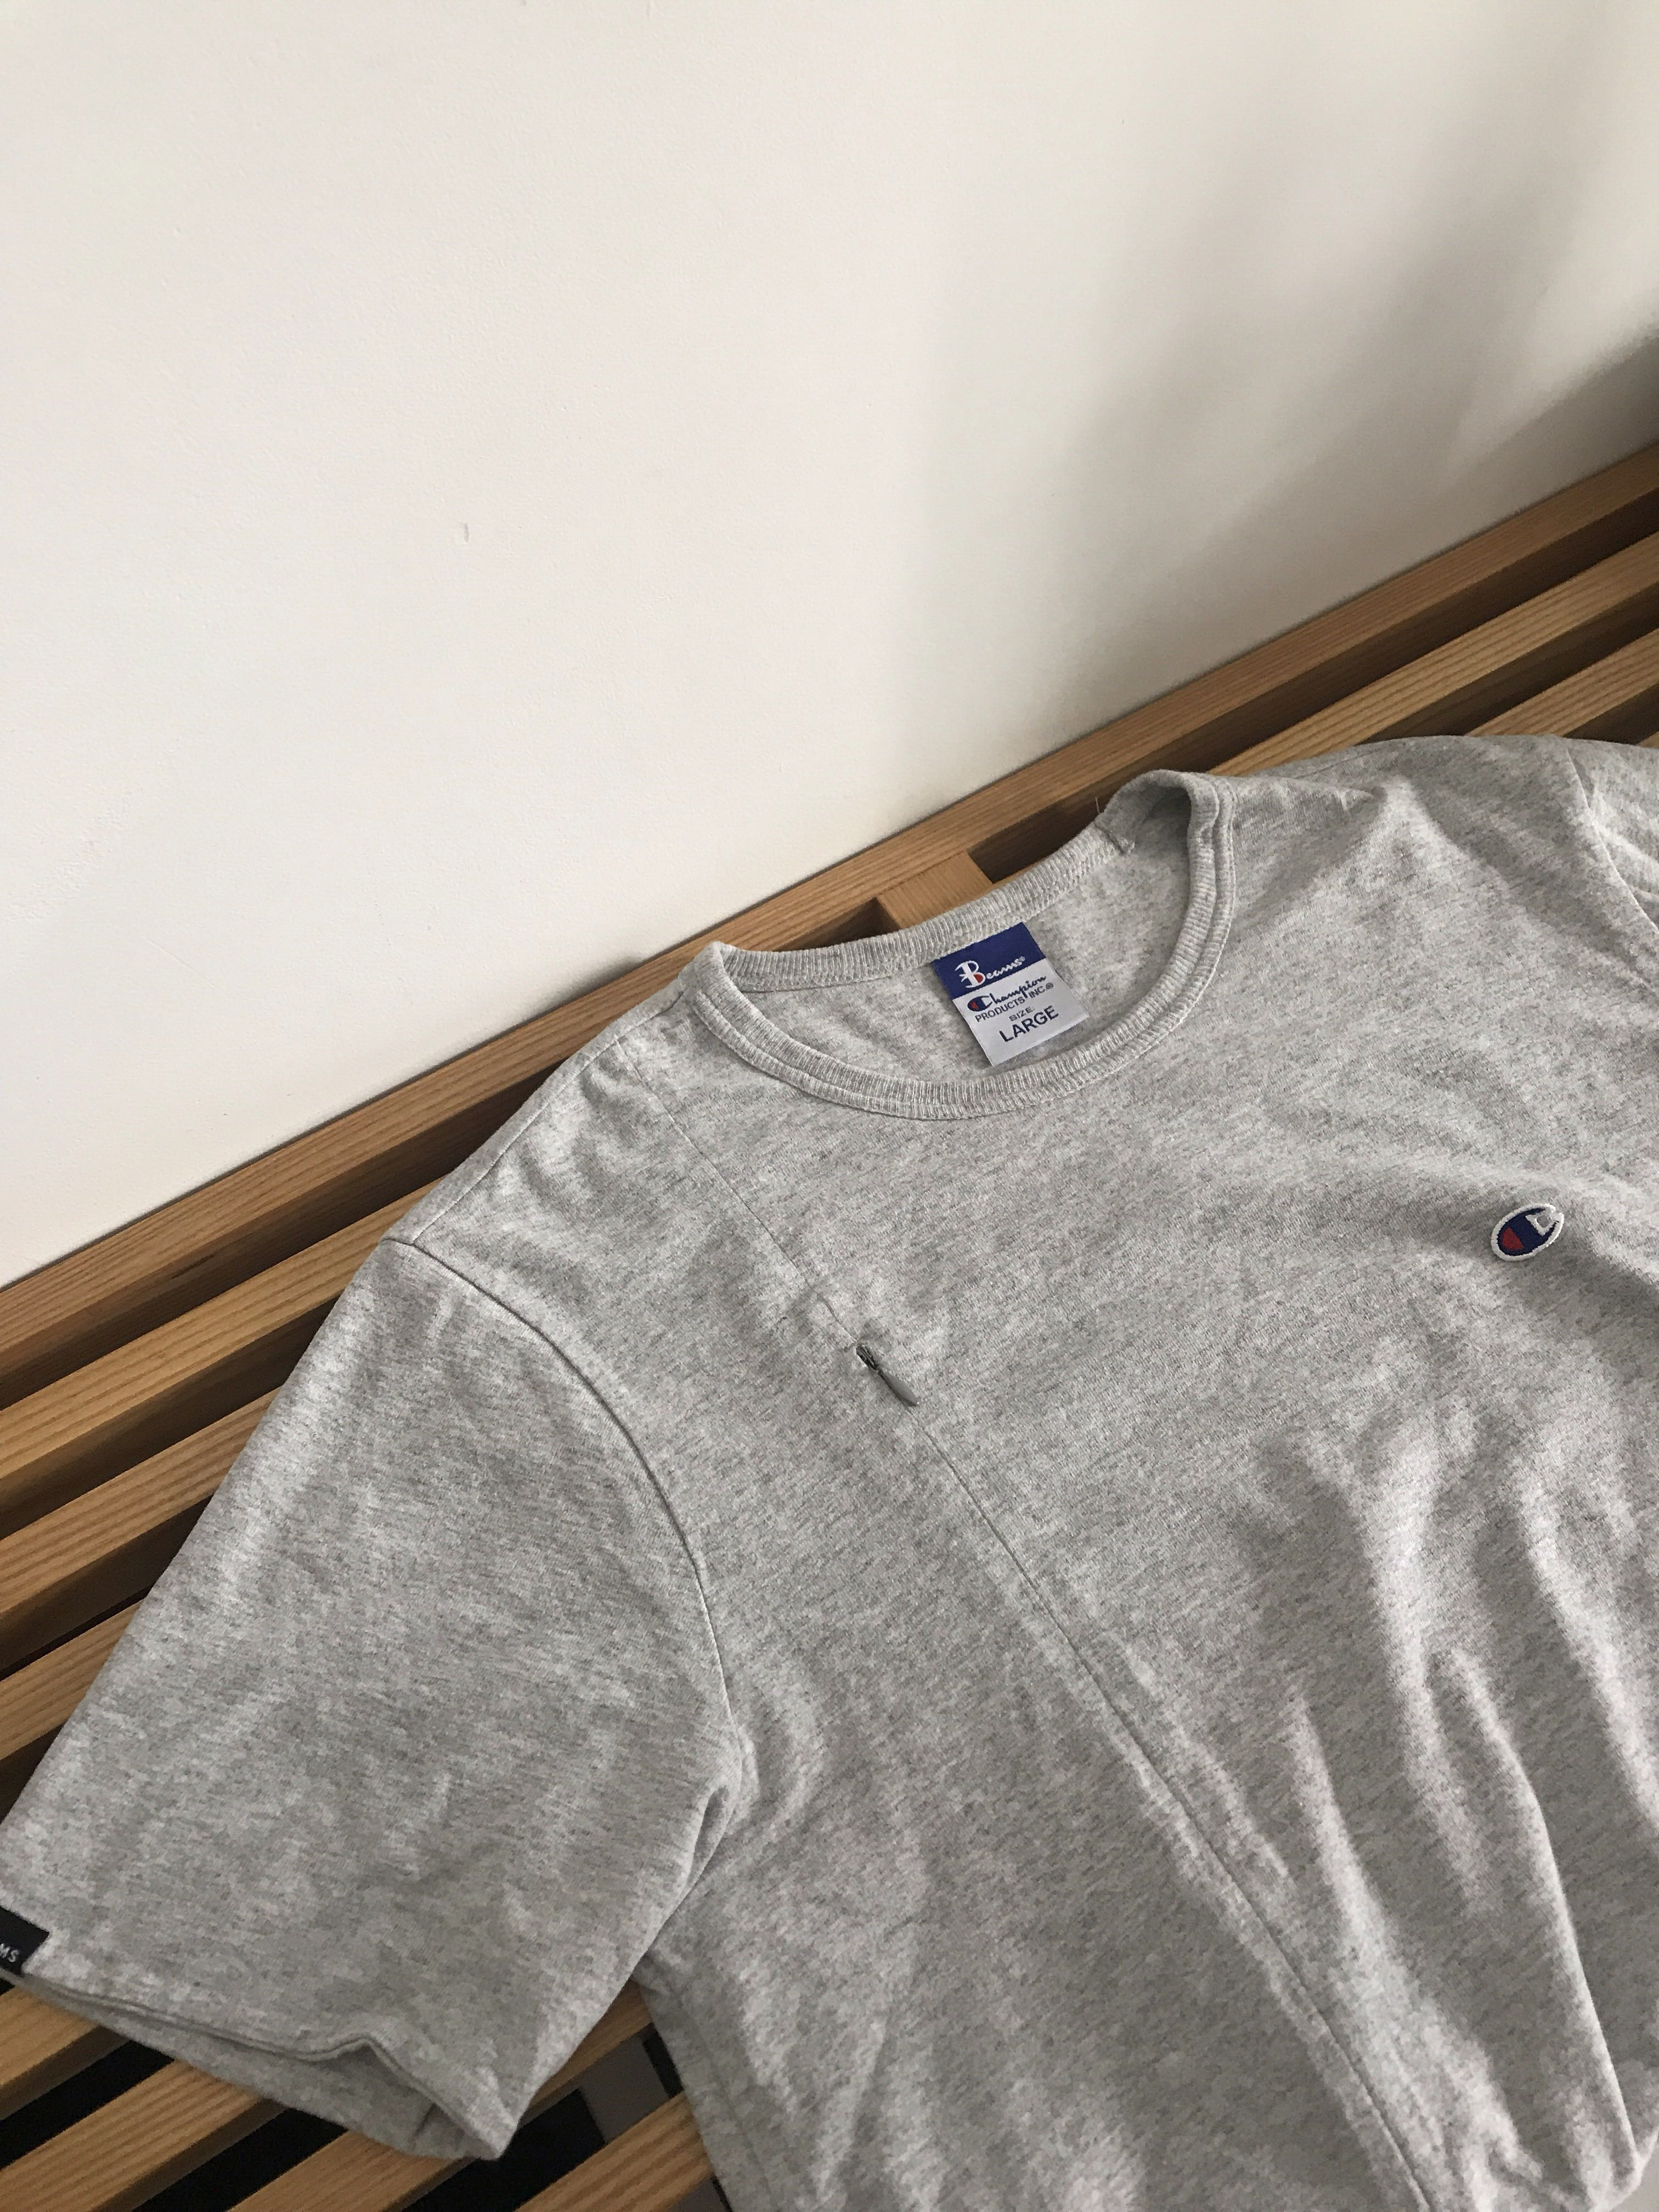 0fce0cf10275 BEAMS JAPAN CHAMPION REVERSE WEAVE L, Men's Fashion, Clothes, Tops on  Carousell